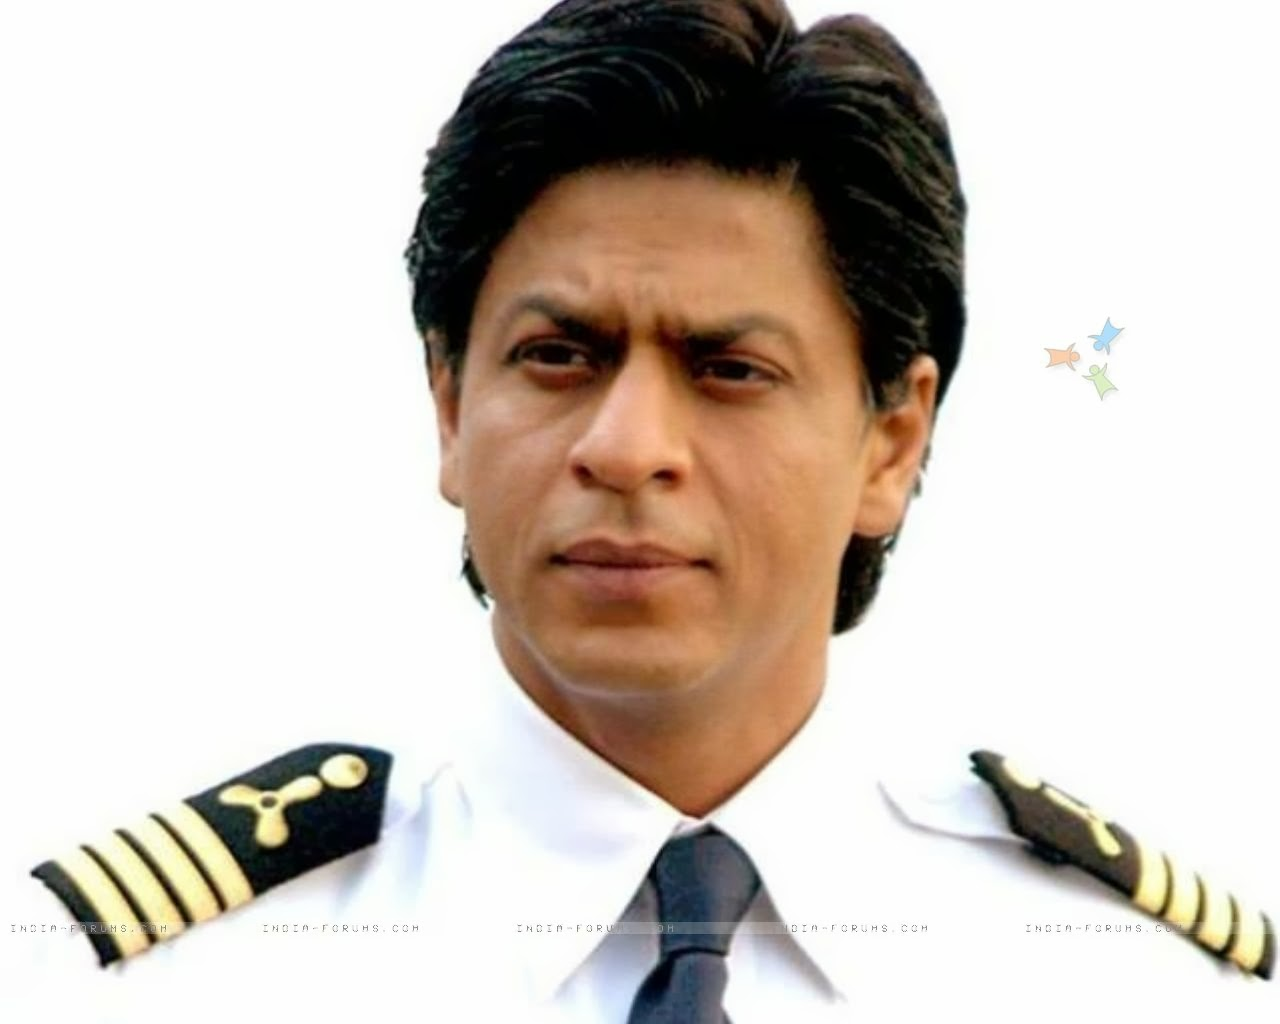 srk shah rukh khan 'shah rukh khan (born 2 november 1965) popularly called as srk is a bollywood indian actor also known as the badshah of bollywood, king of bollywood, king khan.